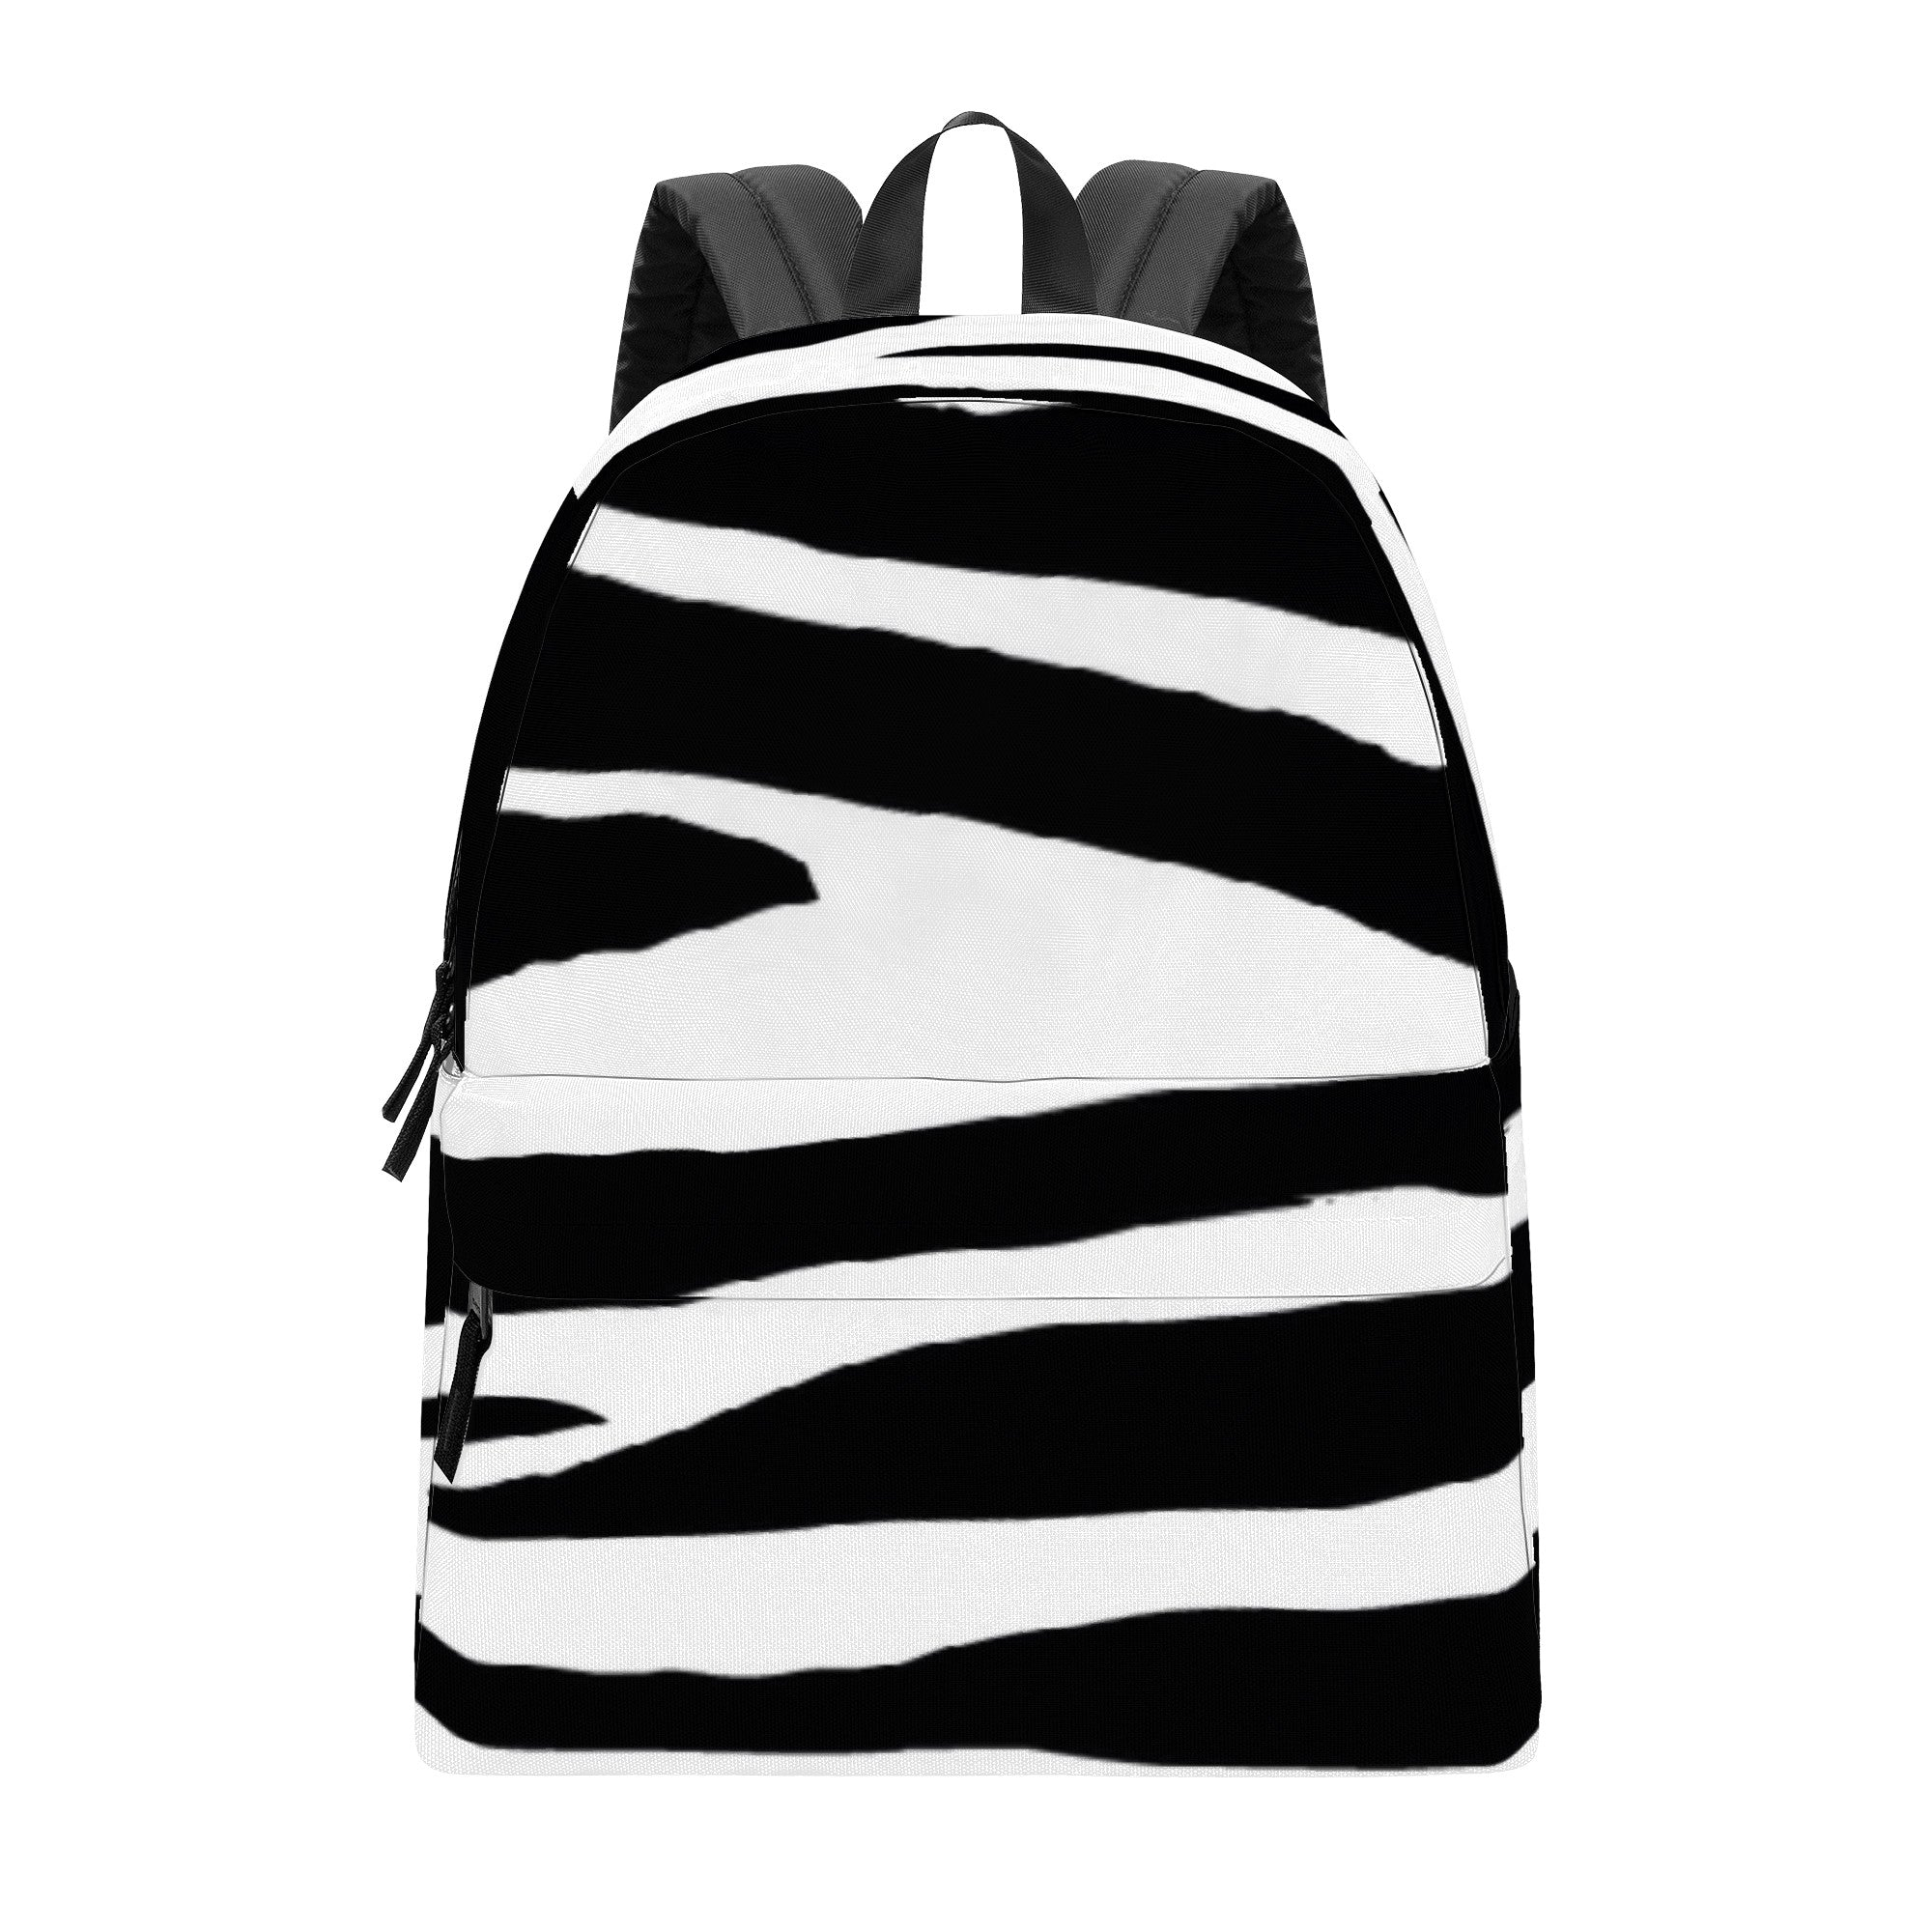 D39 All Over Print Cotton Backpack Black and White HAPPIER FEELINGS